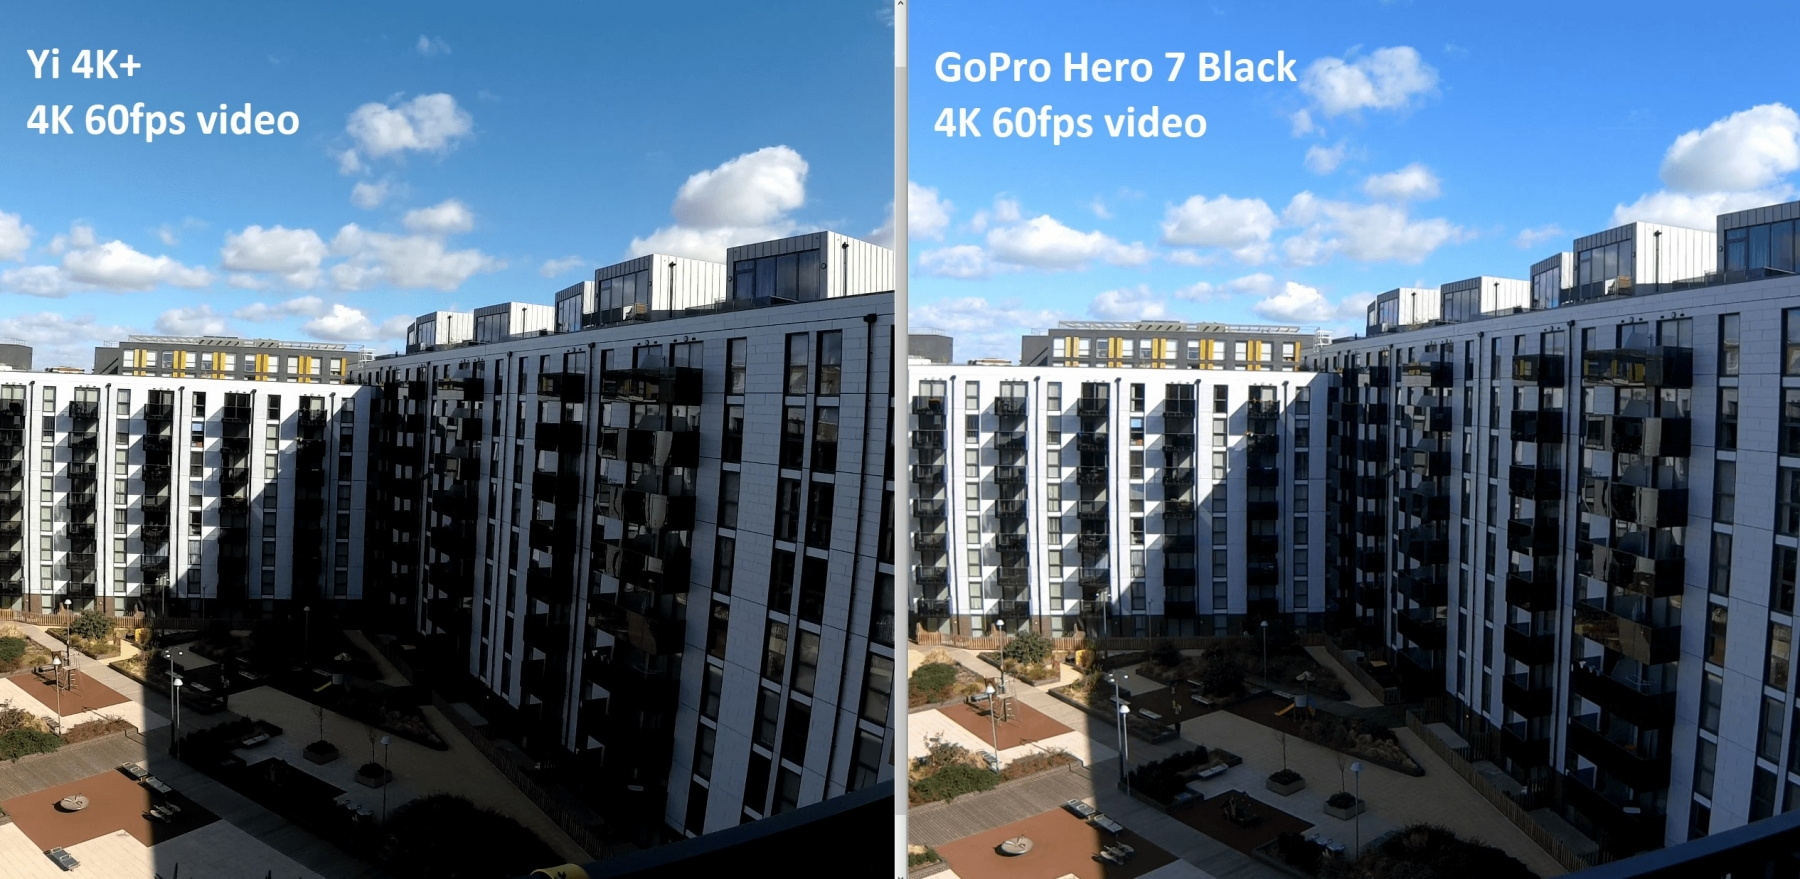 gopro_hero_7_vs_yi_4k_